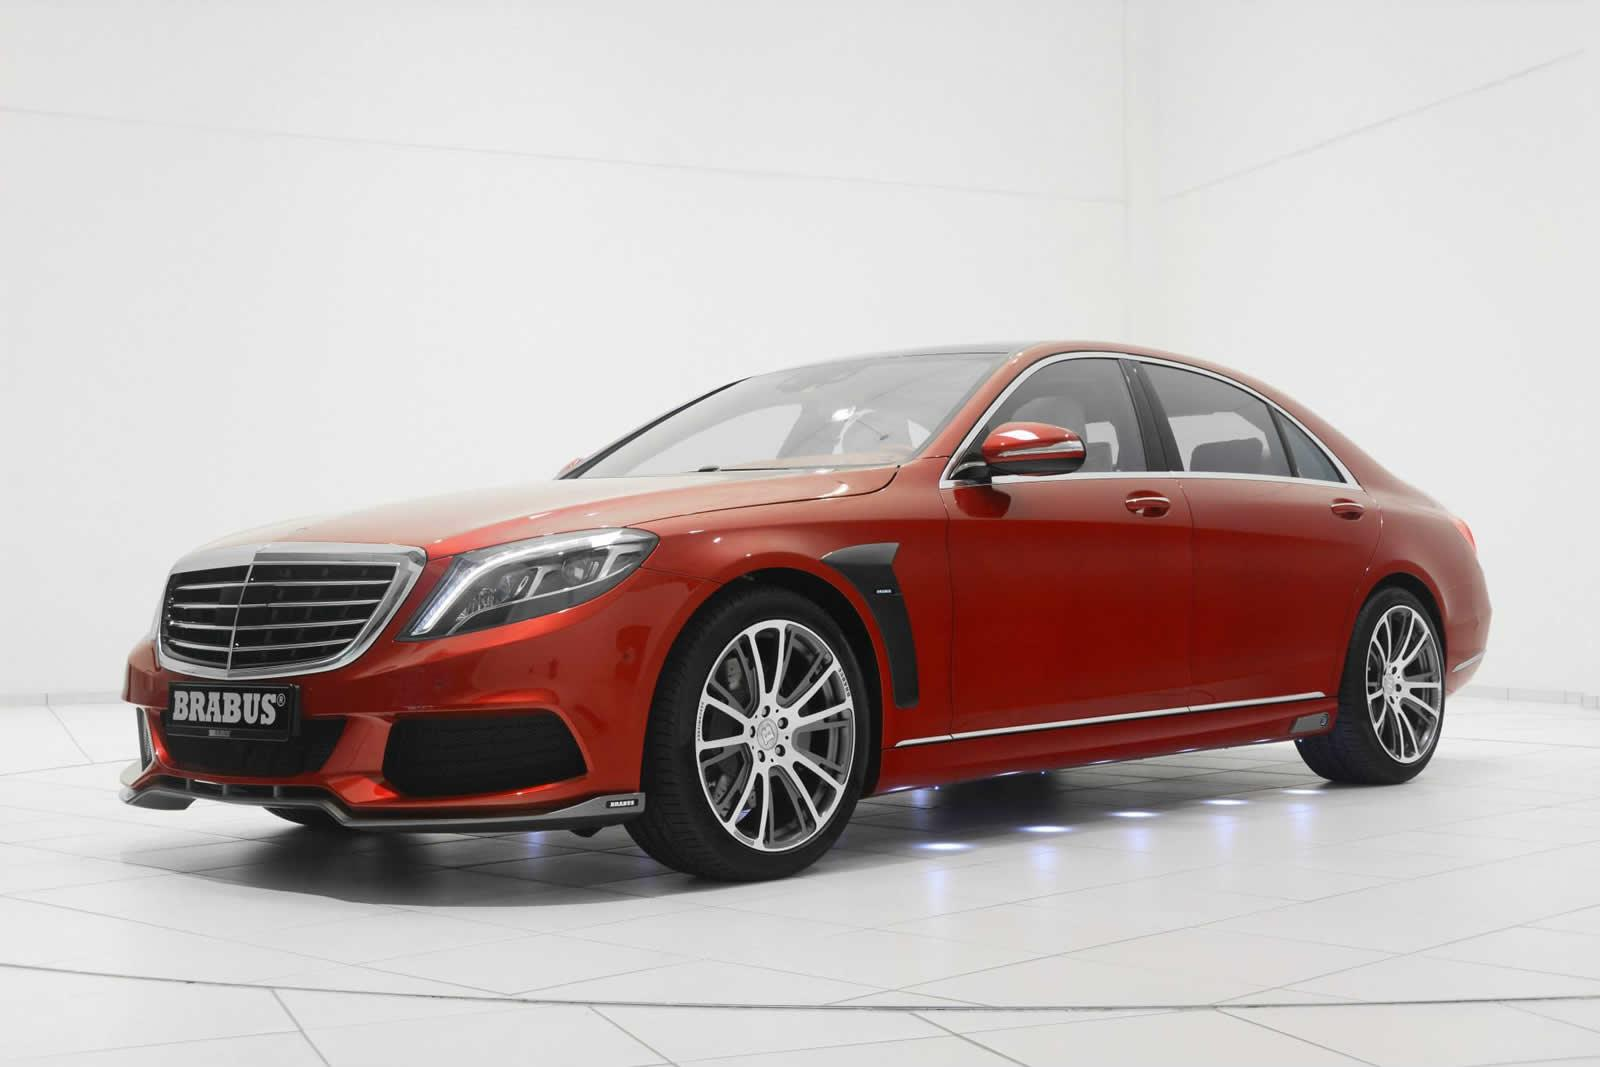 Brabus shows off red mercedes benz s class gtspirit for Mercedes benz red